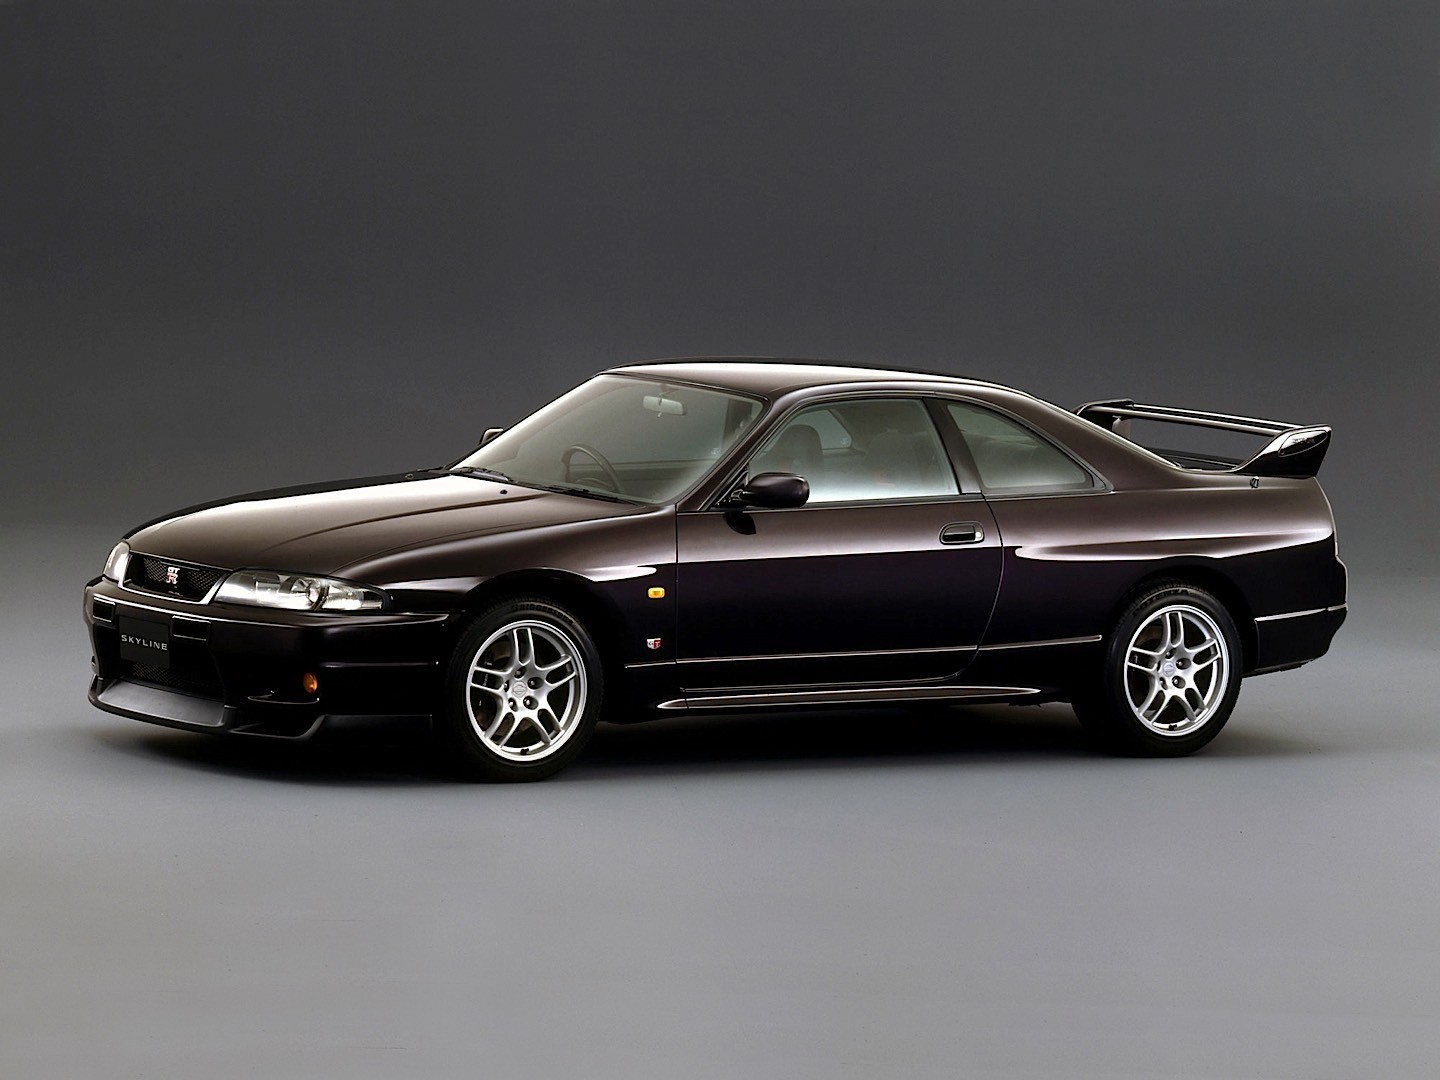 nissan skyline gt r r33 1995 1996 1997 1998 autoevolution. Black Bedroom Furniture Sets. Home Design Ideas